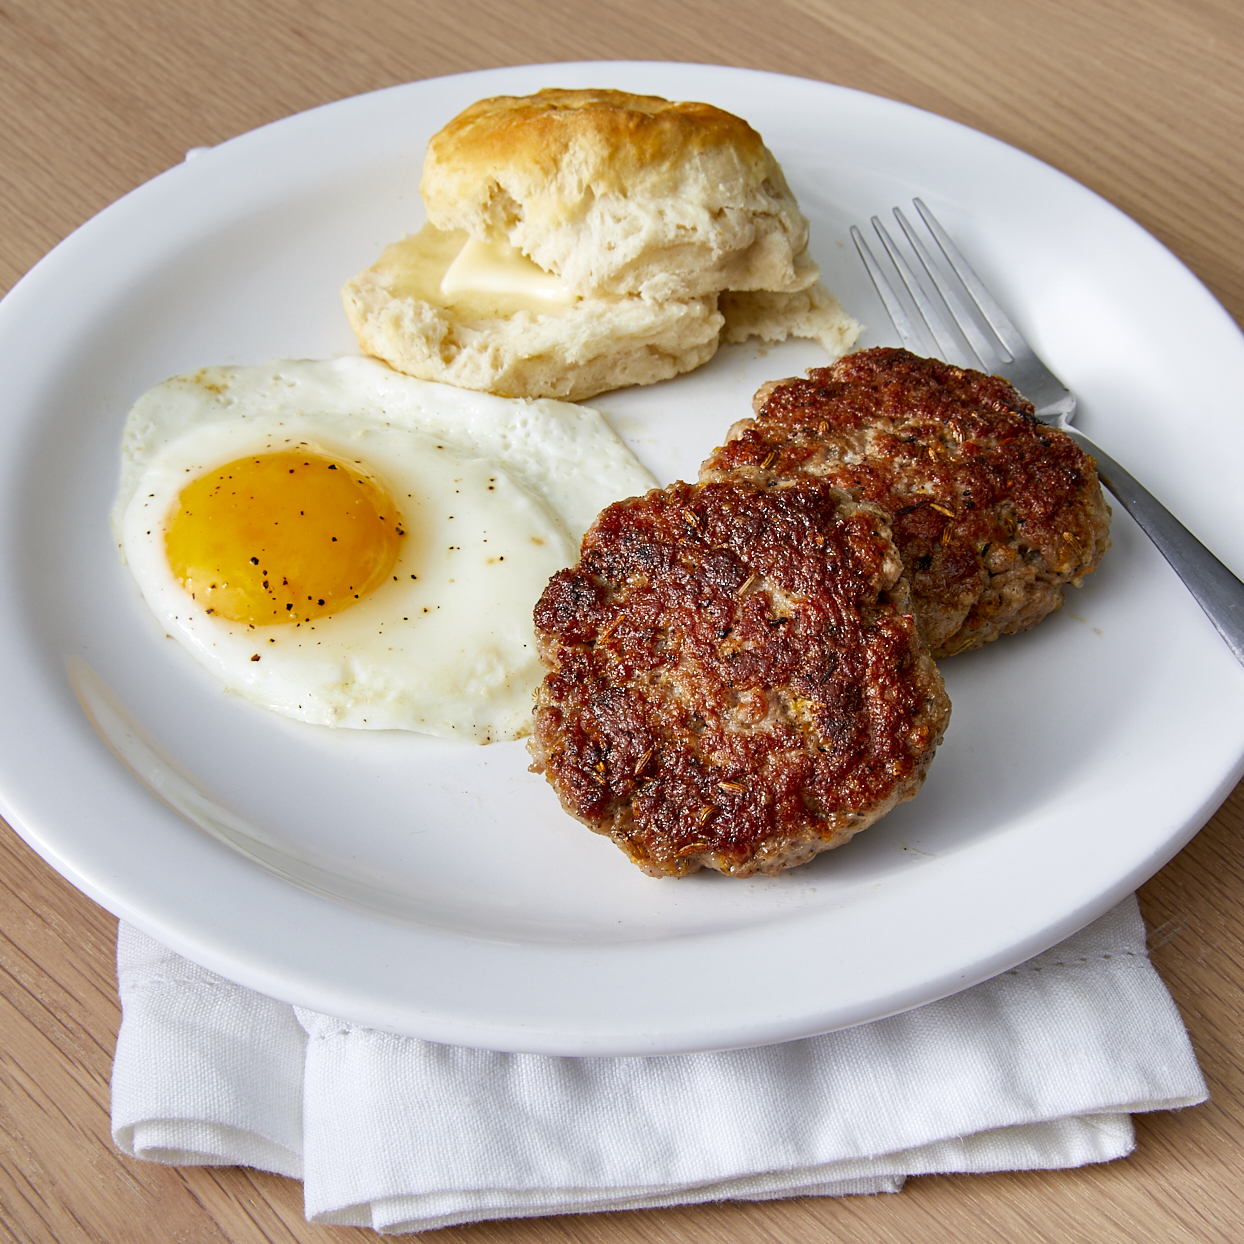 Chef John's Breakfast Sausage Patties Trusted Brands